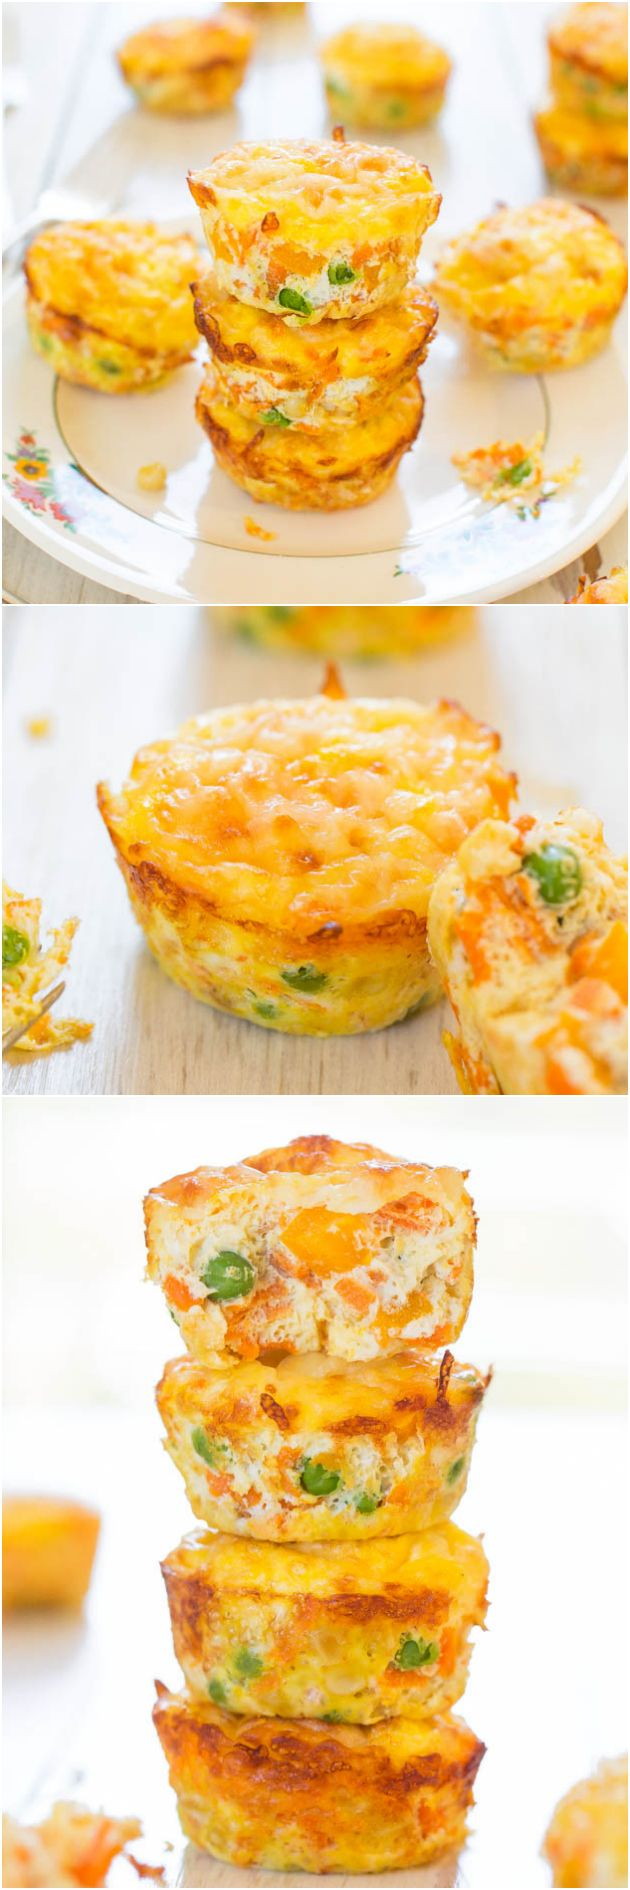 100-Calorie Cheese, Vegetable and Egg Muffins (GF) – Healthy, easy ll want to keep a stash on hand!